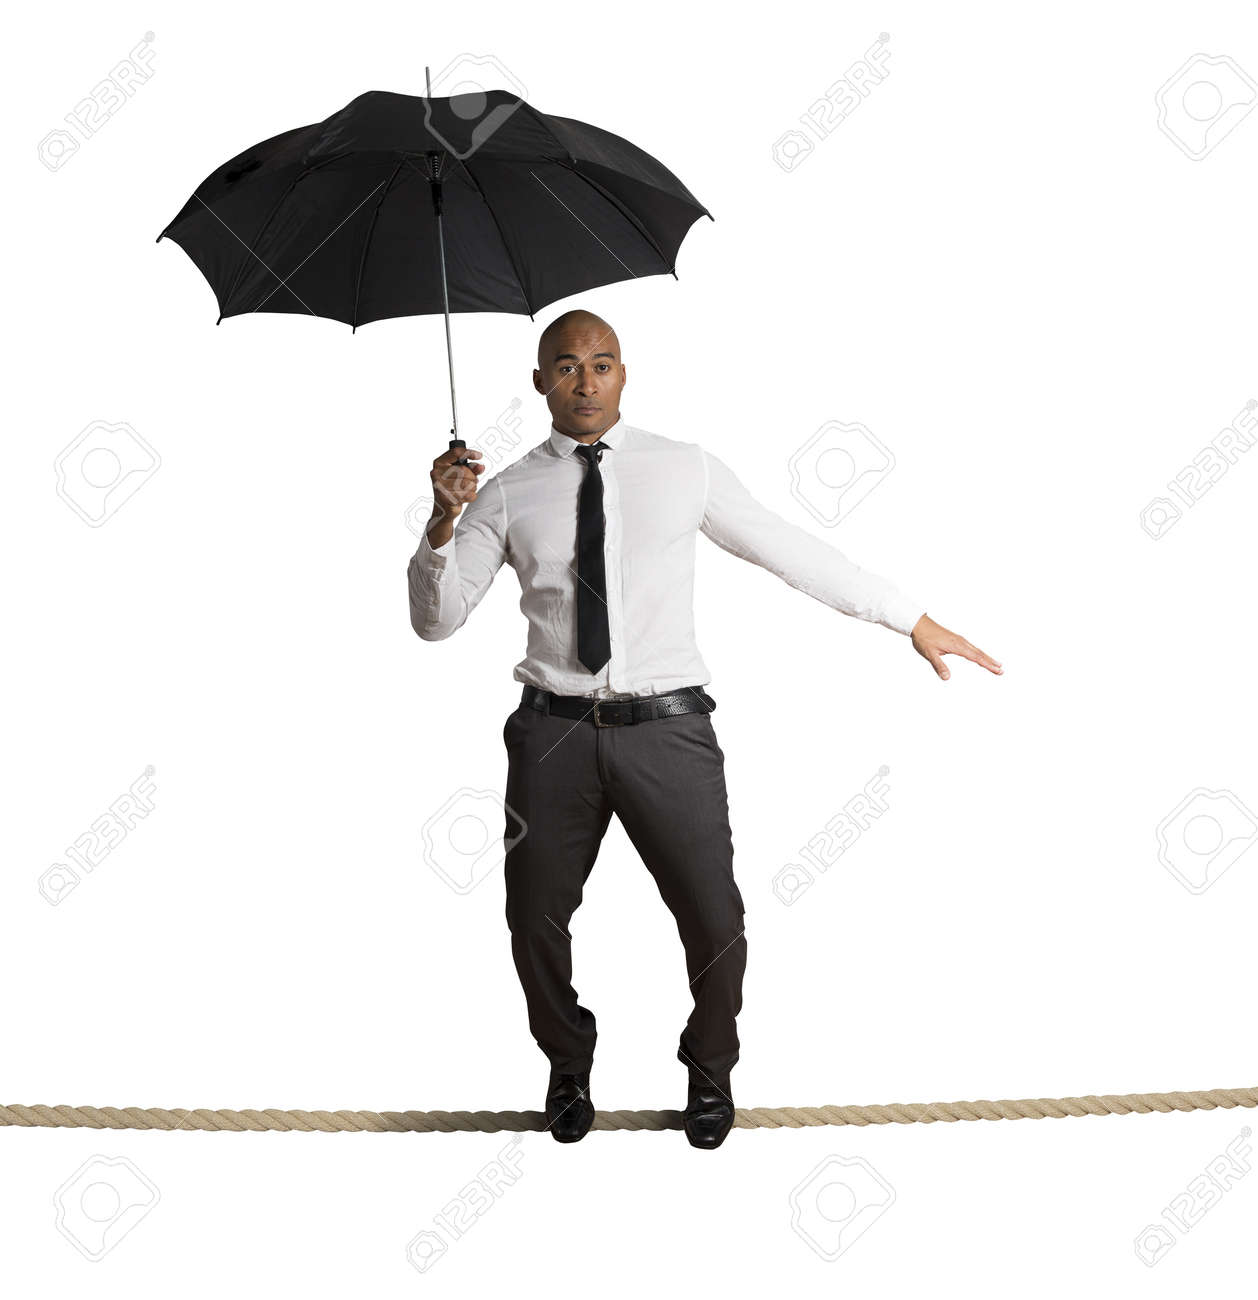 Concept of risk in business with businessman on the rope Stock Photo - 22384732